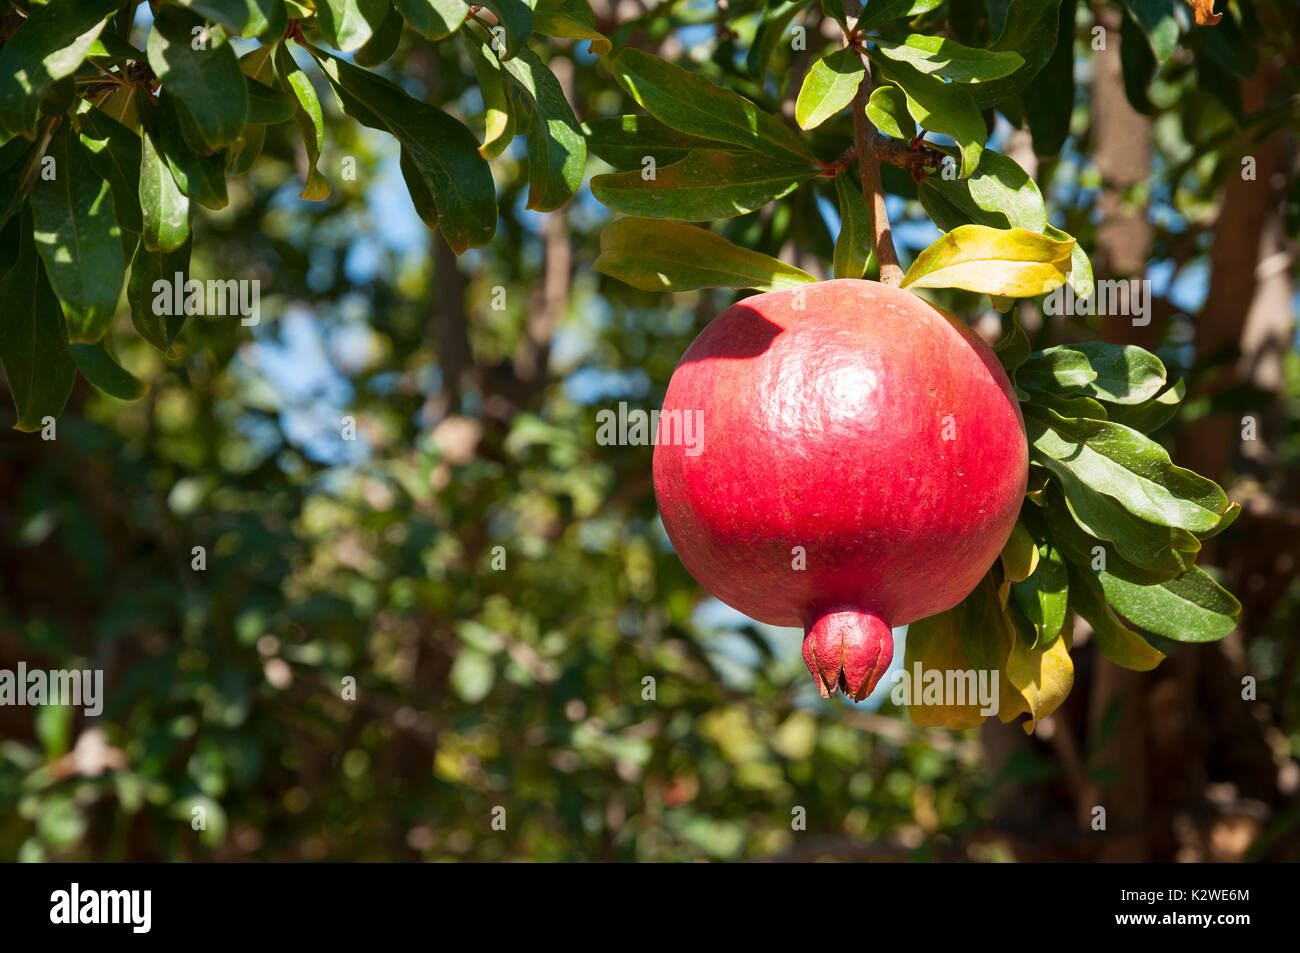 how to grow pomegranate from fruit